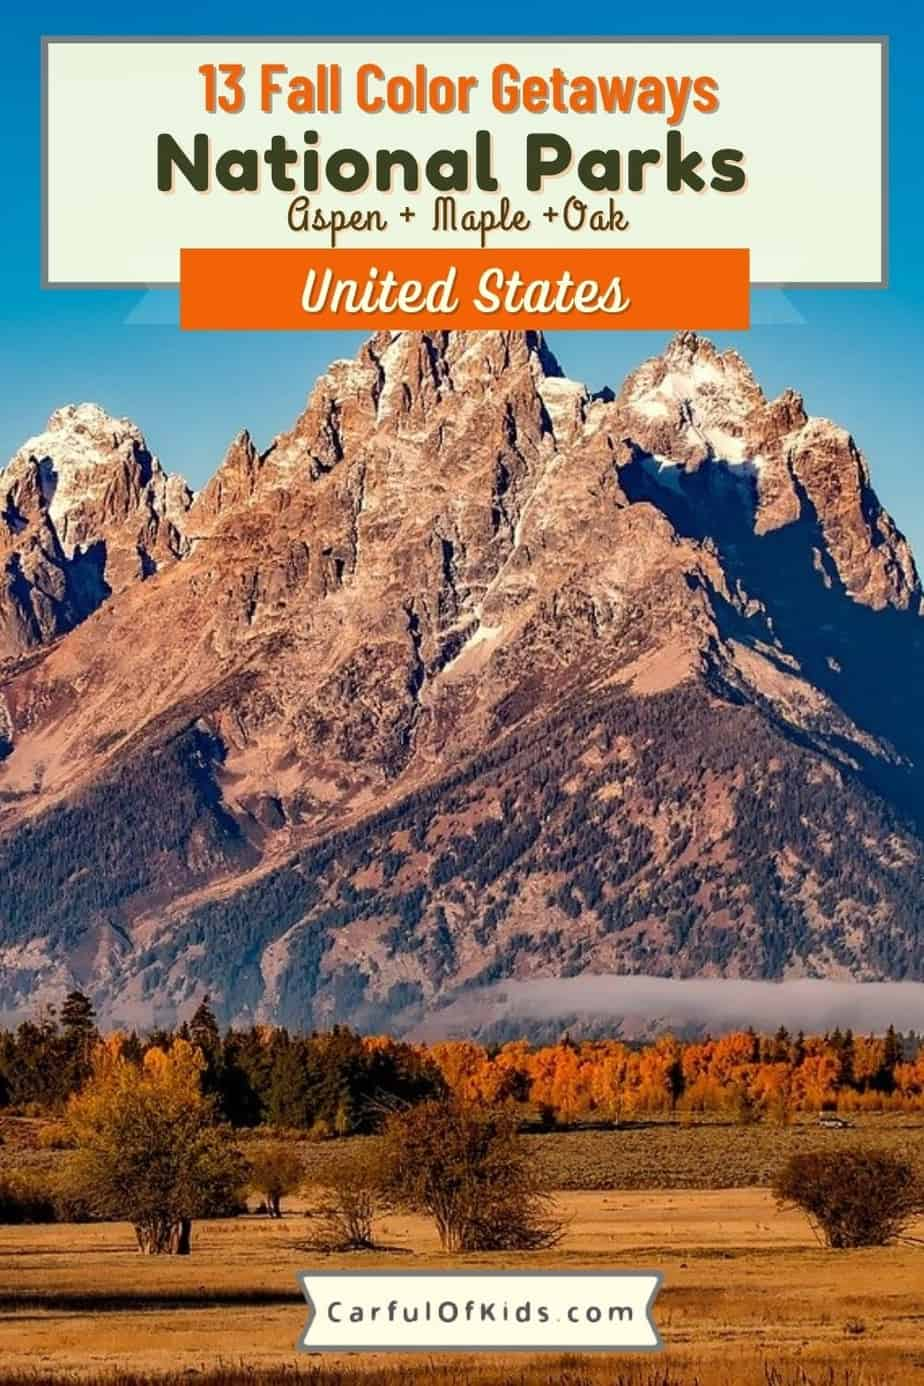 Take a Fall Color Trip to a National Park. Find U.S. National Parks from Maine's Acadia to California's Yosemite for the best fall foliage. What Parks have the best Fall Color | Where to go for a Leaf Peeping Trip | #FallColor #NationalParks